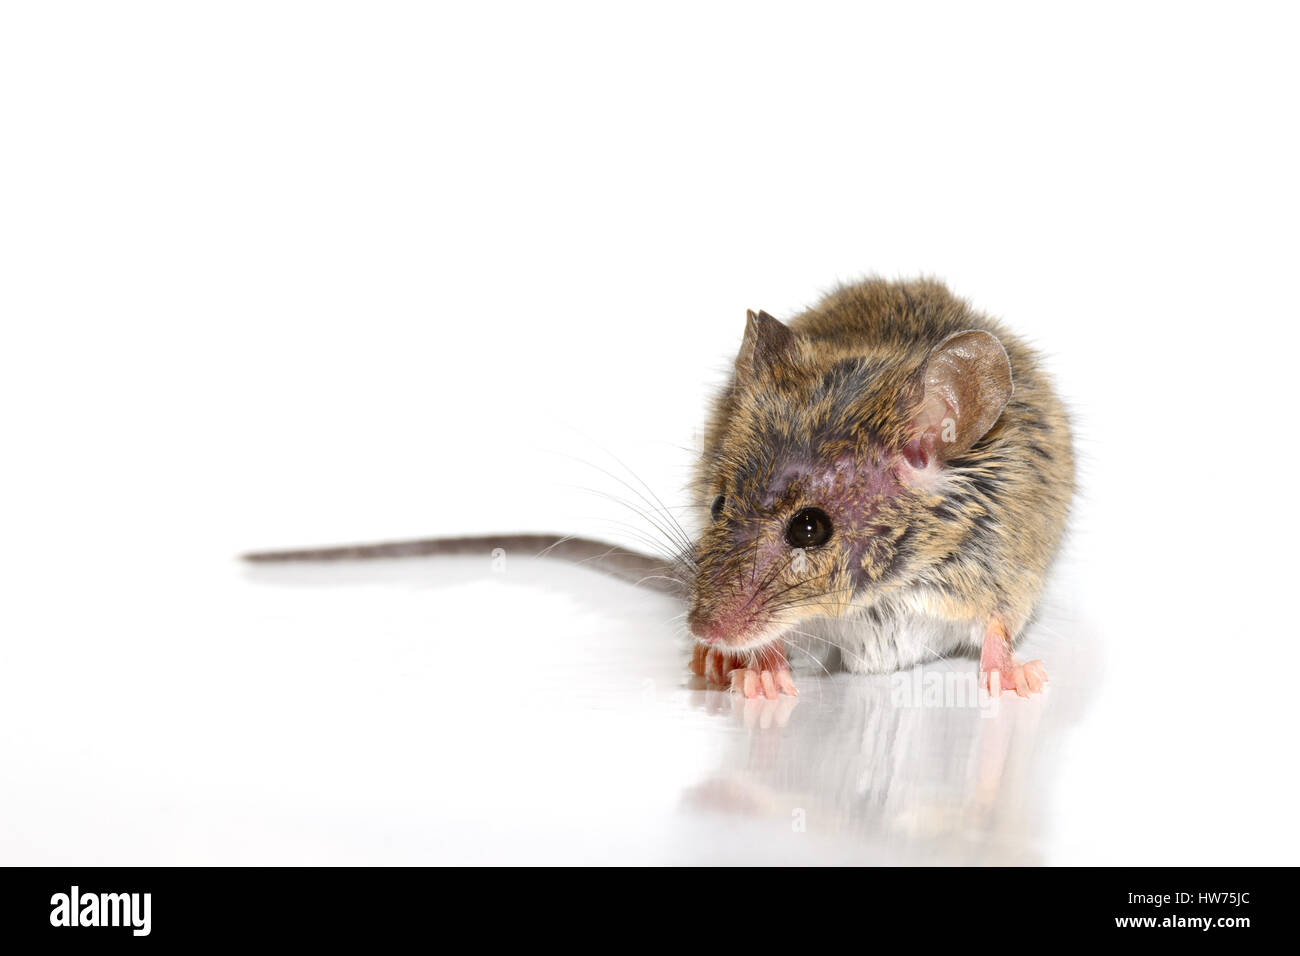 house mouse (Mus musculus) on white background Close-up s - Stock Image